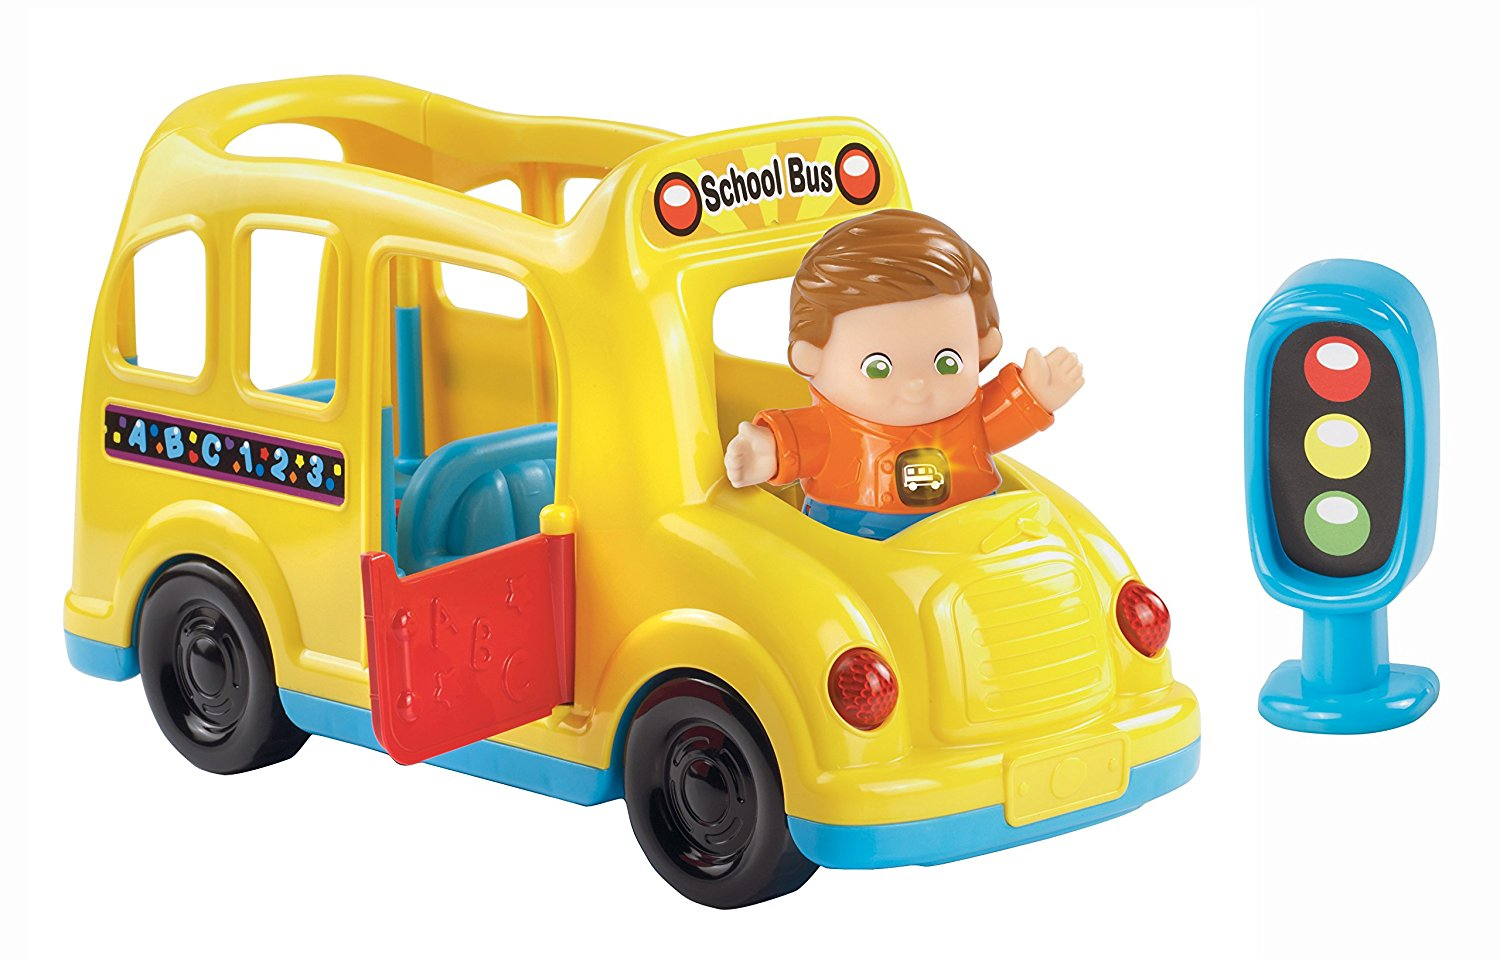 Go! Go! Smart Friends Learning Wheels School Bus, Take a ride on the VTech Go! Go! Smart... by